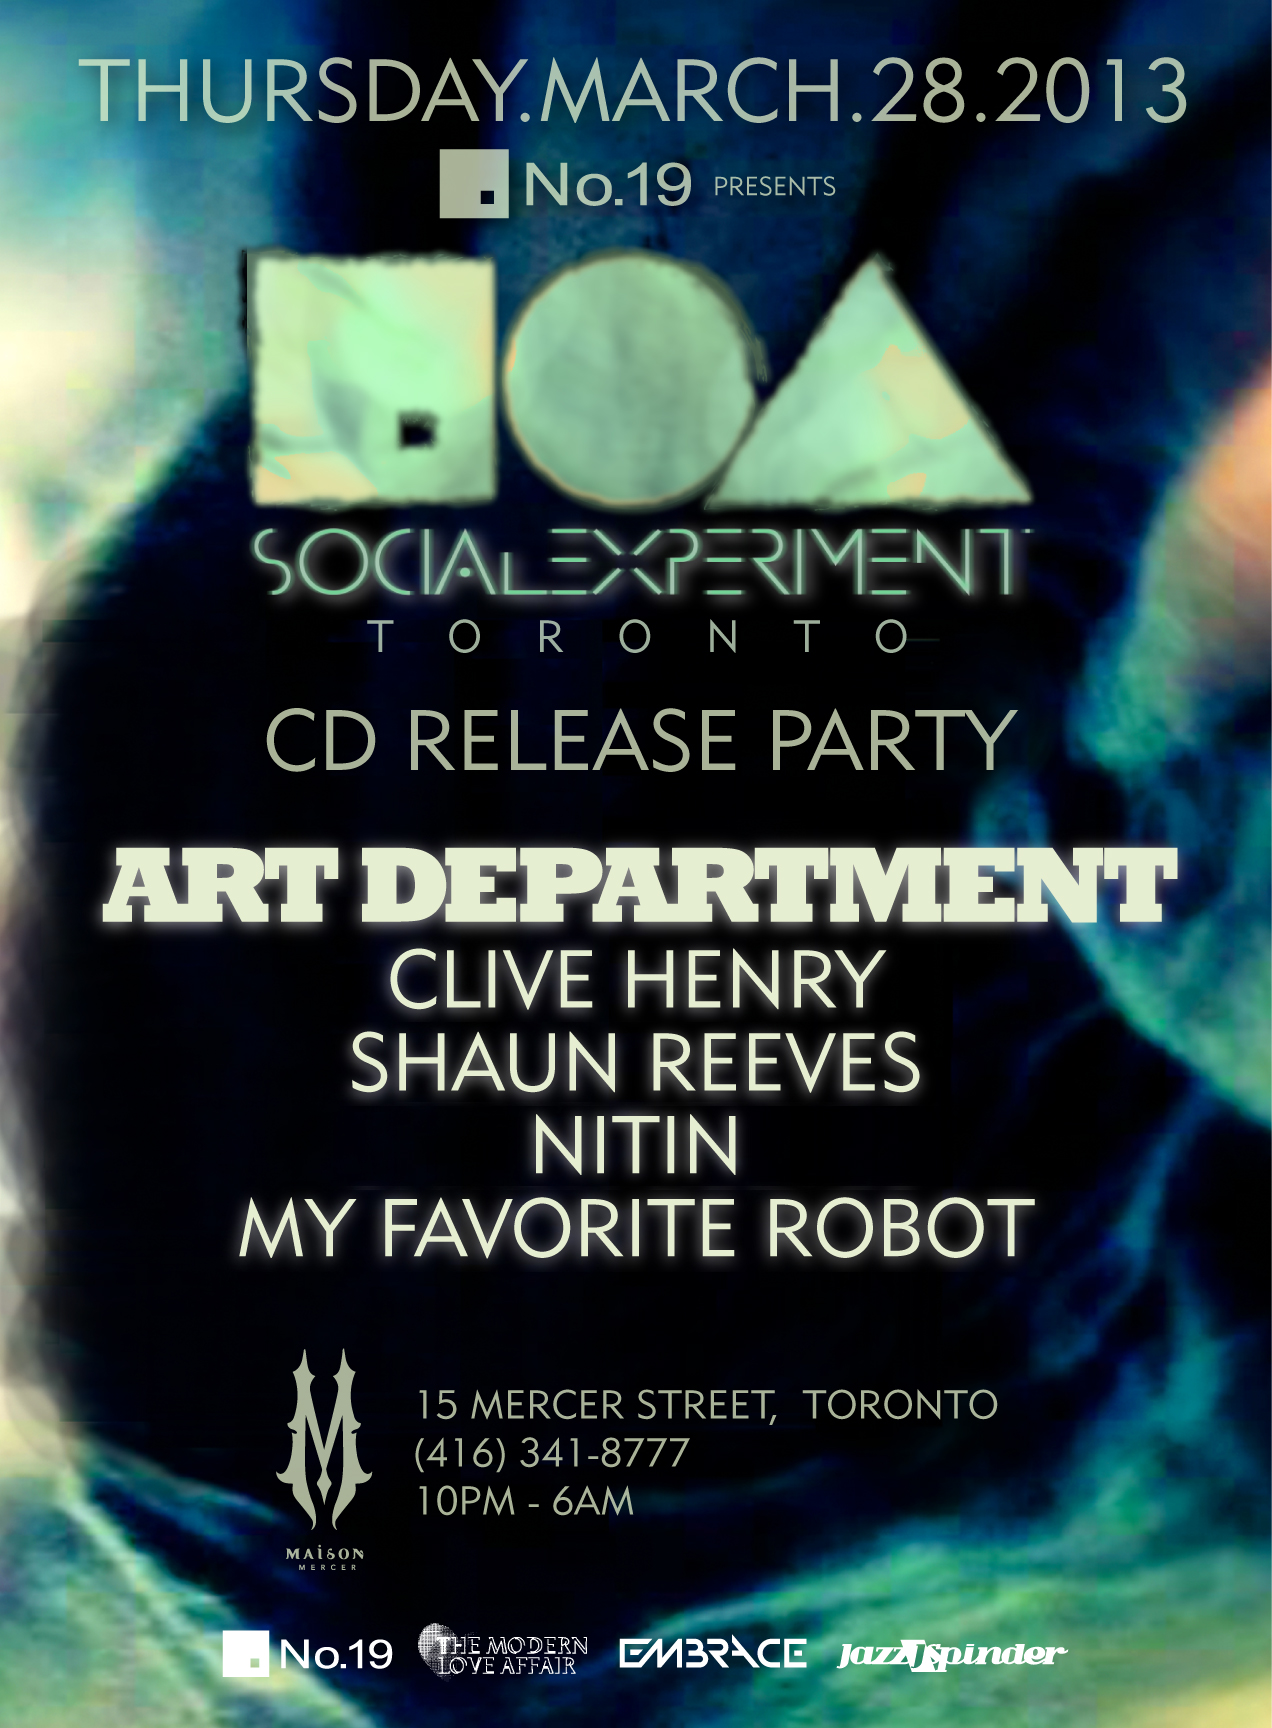 Art Department, Clive Henry, Shaun Reeves, Nitin, My Favourite Robot Maison Mercer Toronto